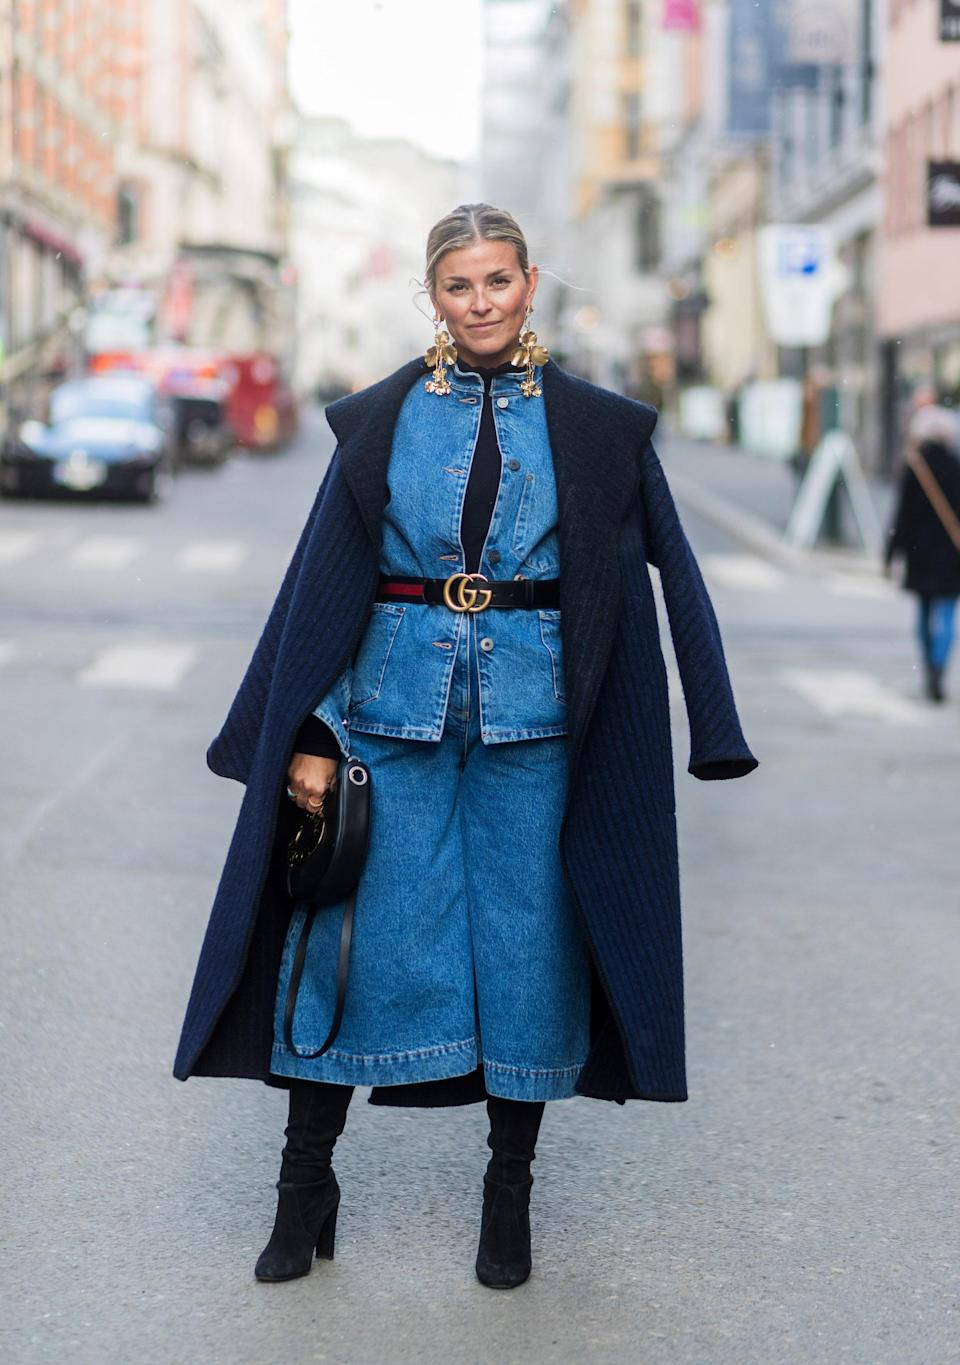 Forget what you think about denim on denim: This belted shirt, culottes, and overcoat are chic as hell.